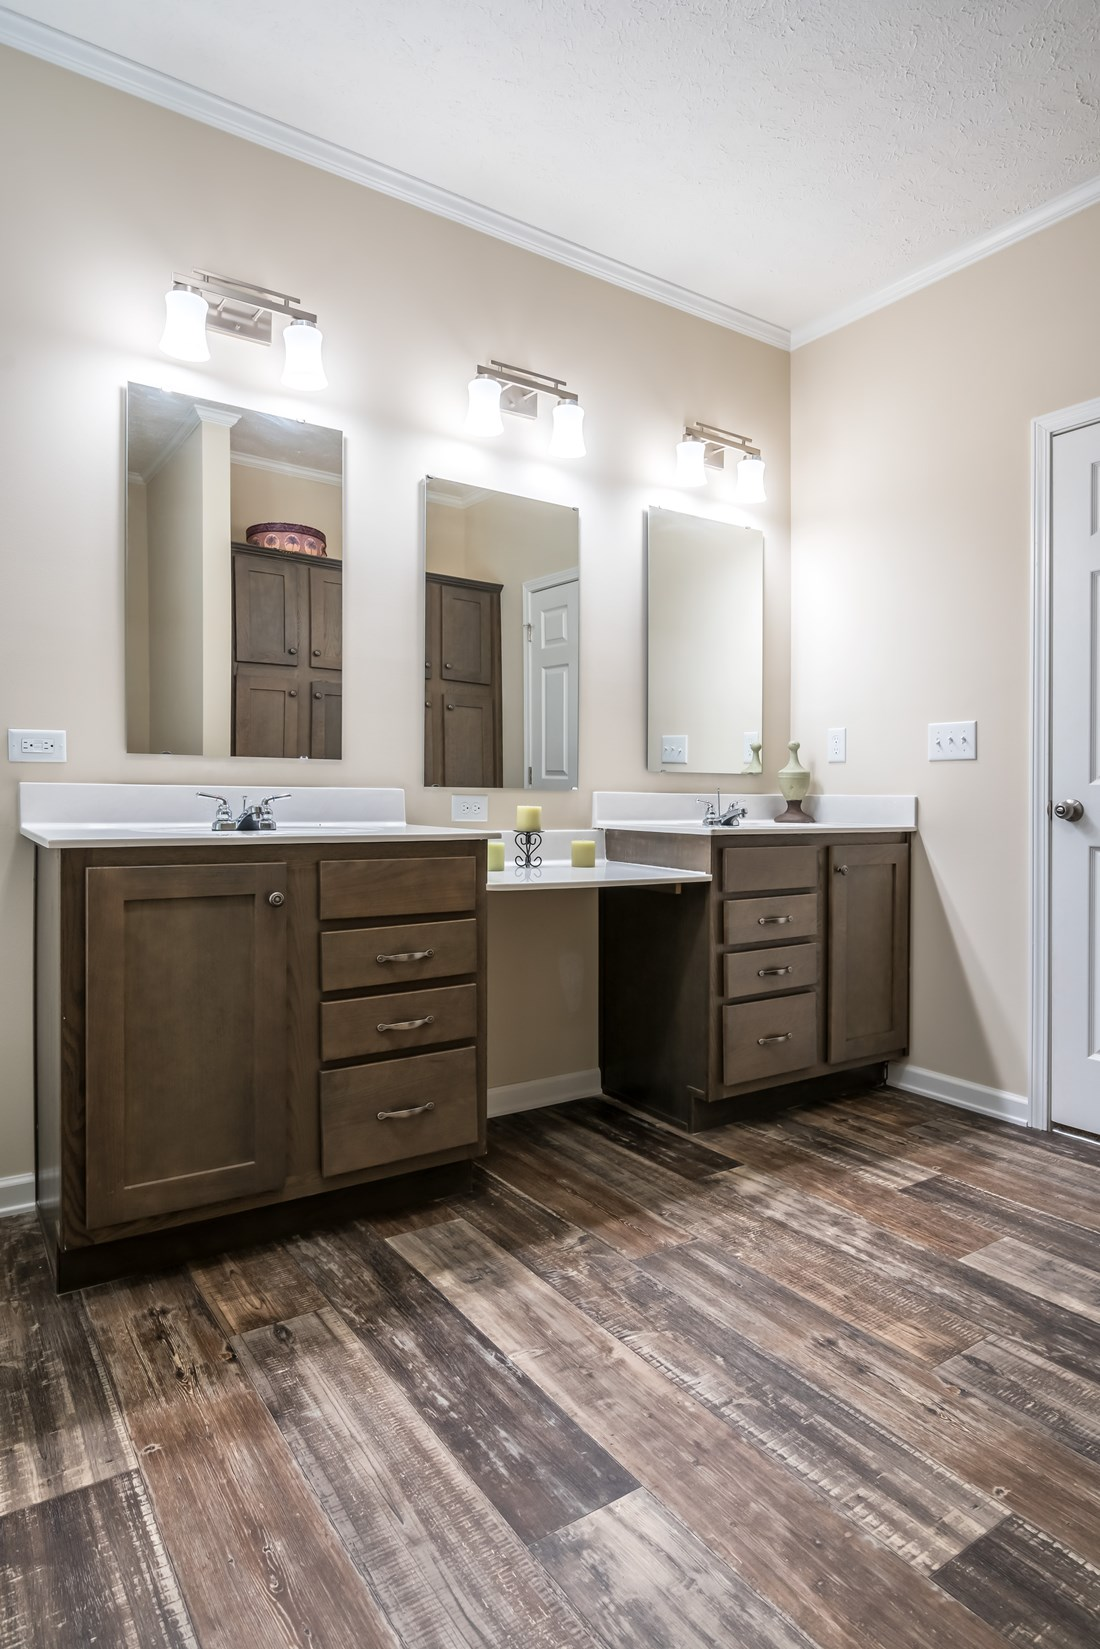 The 3554 JAMESTOWN Master Bathroom. This Manufactured Mobile Home features 4 bedrooms and 2 baths.